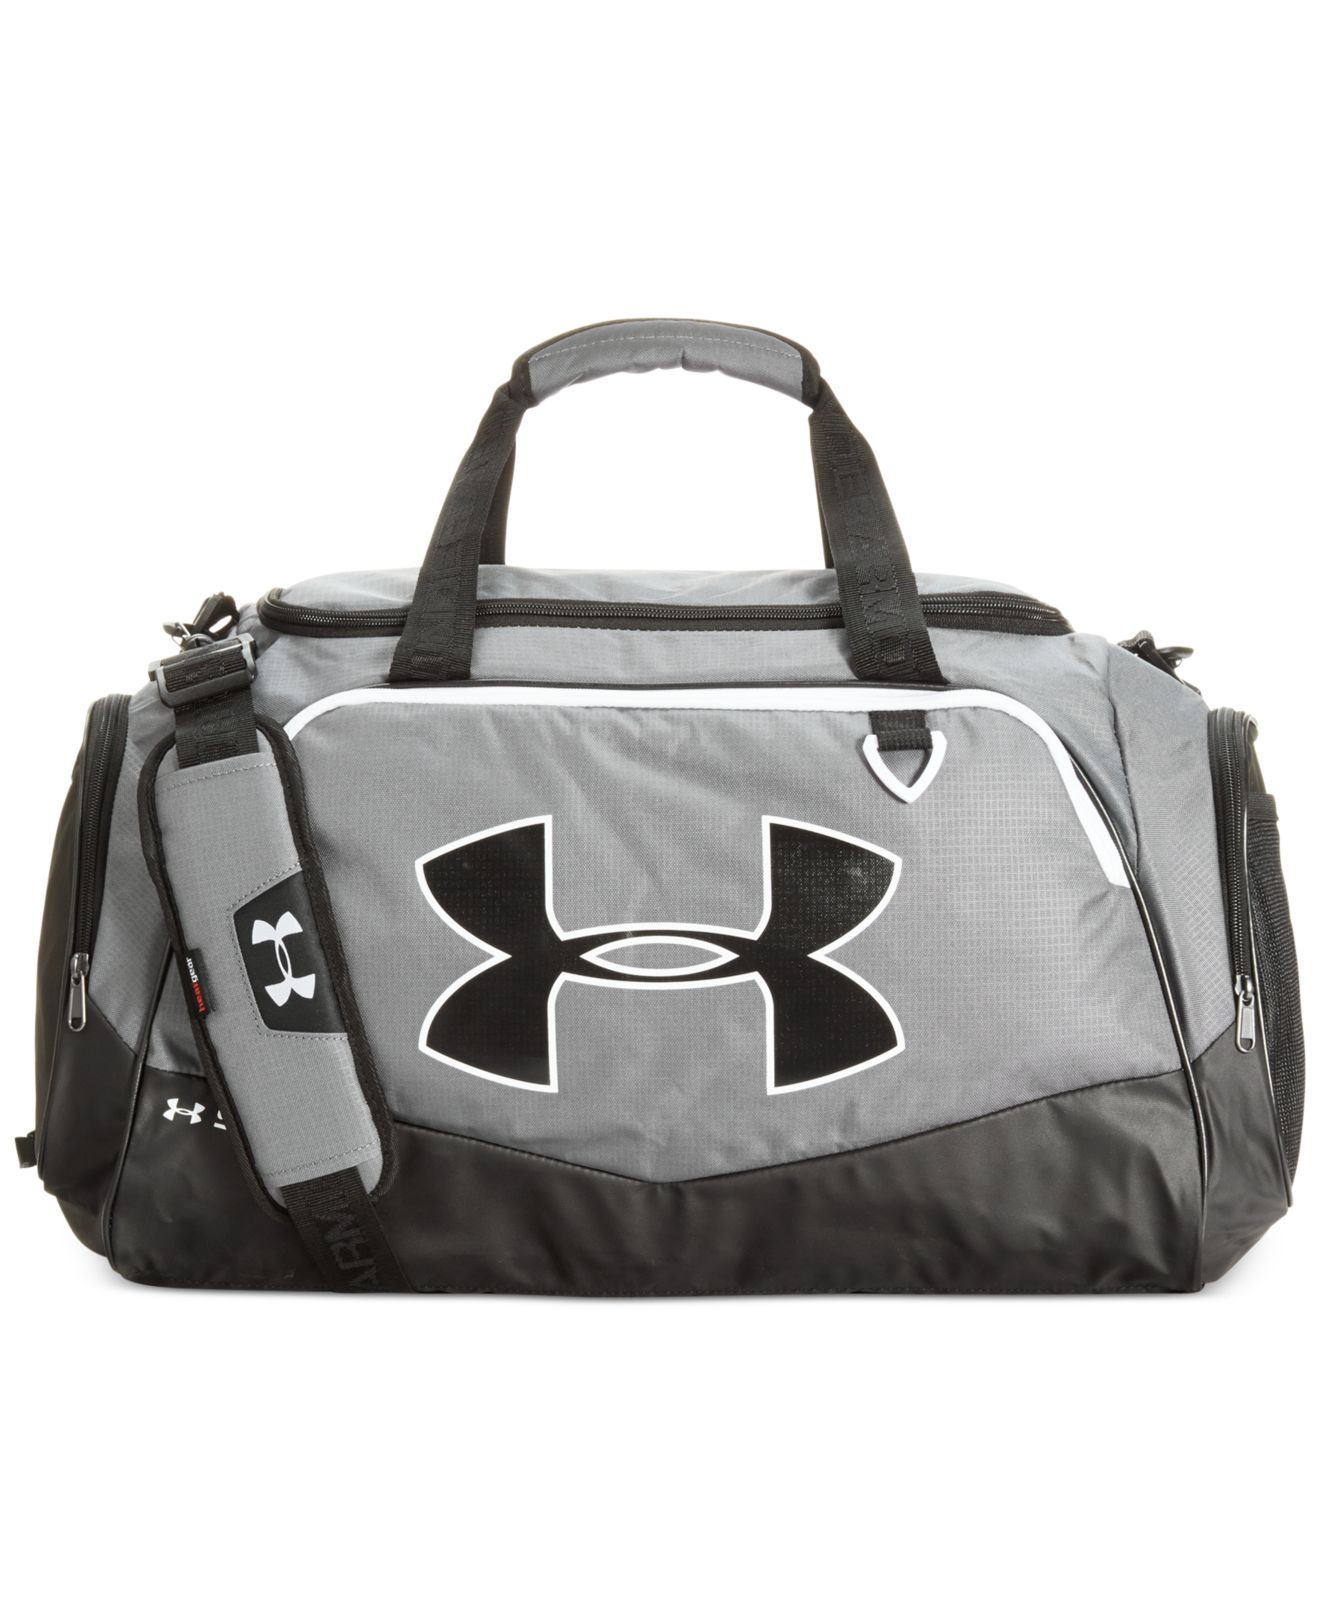 a6bded938338 Lyst - Under Armour Undeniable Medium Duffle Bag in Gray for Men